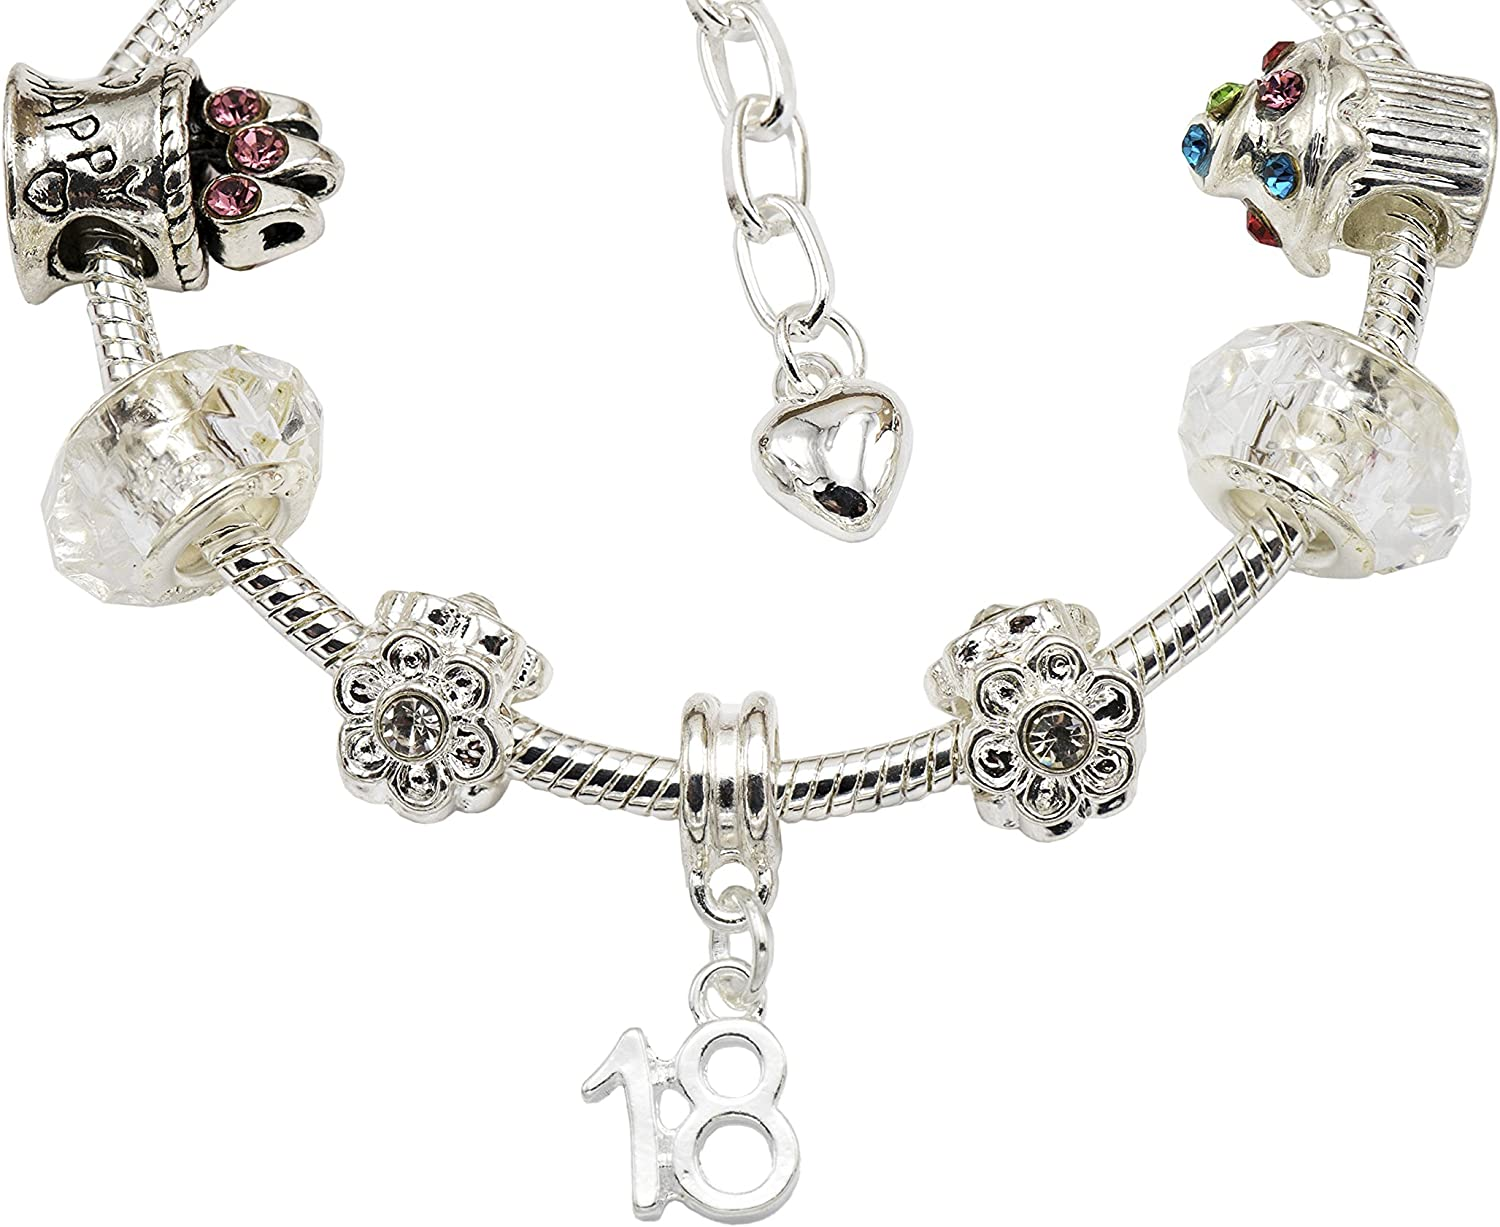 Womens Silver Plated Birthday Charm Bracelet with Gift Box 55th 25th 18th 40th 35th 15th 50th 16th 45th 21st 13th 70th /& 80th 60th 30th 20th Ages Available 12th